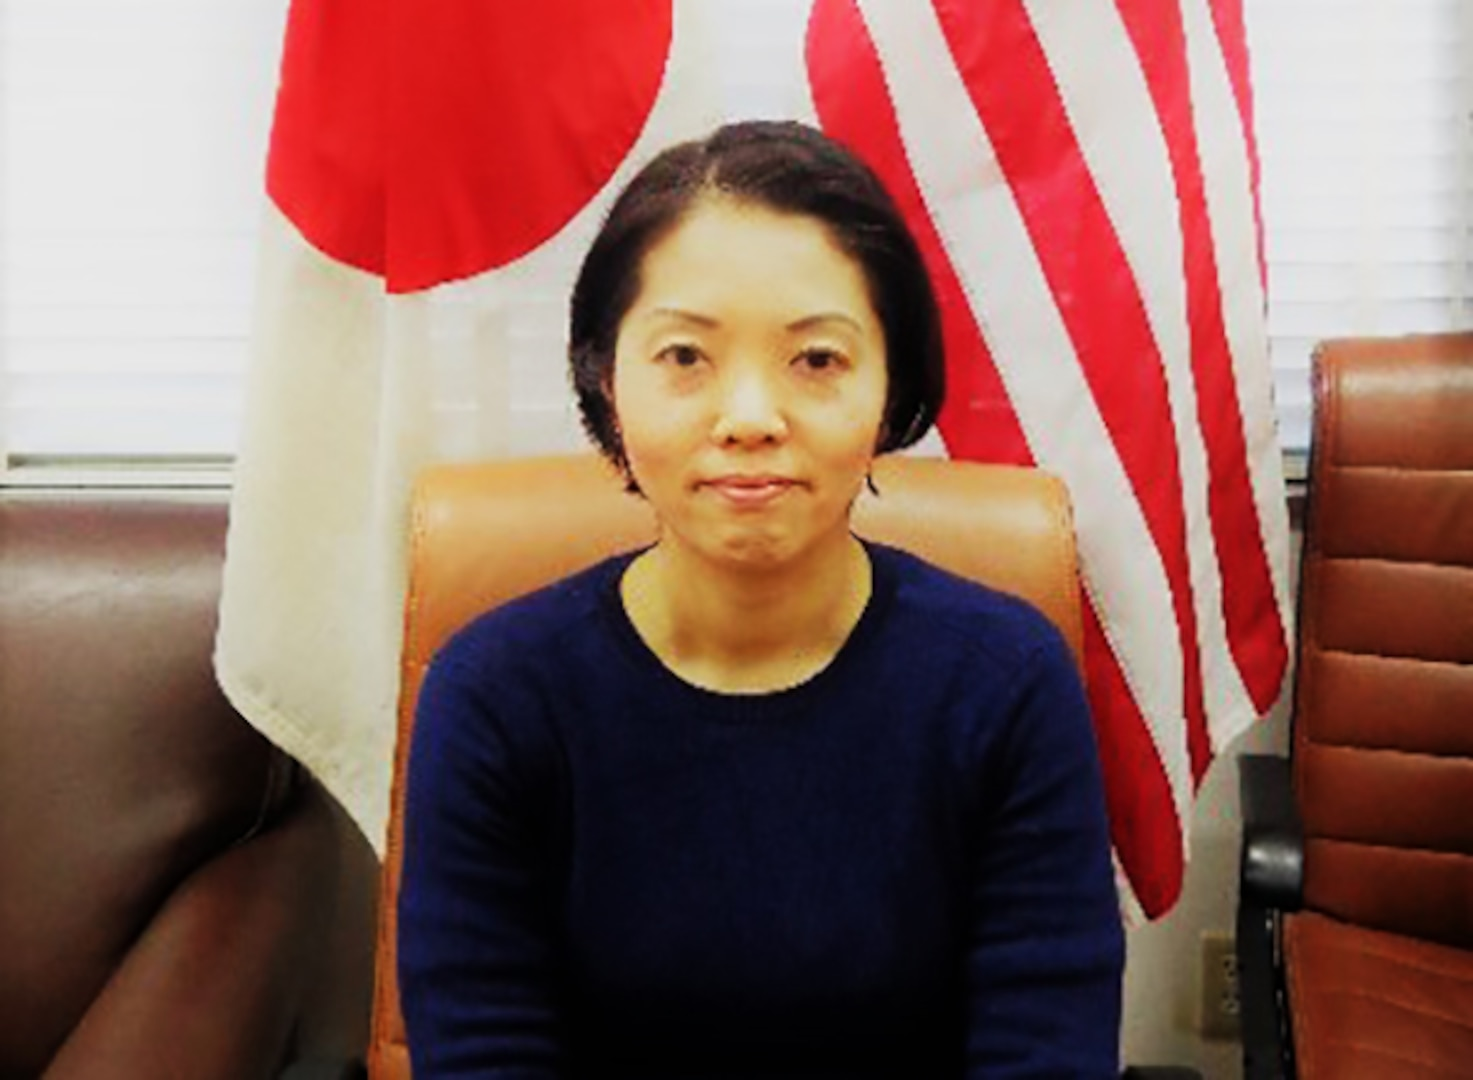 Megumi Ikeda poses in front of the Japanese and U.S. flags.